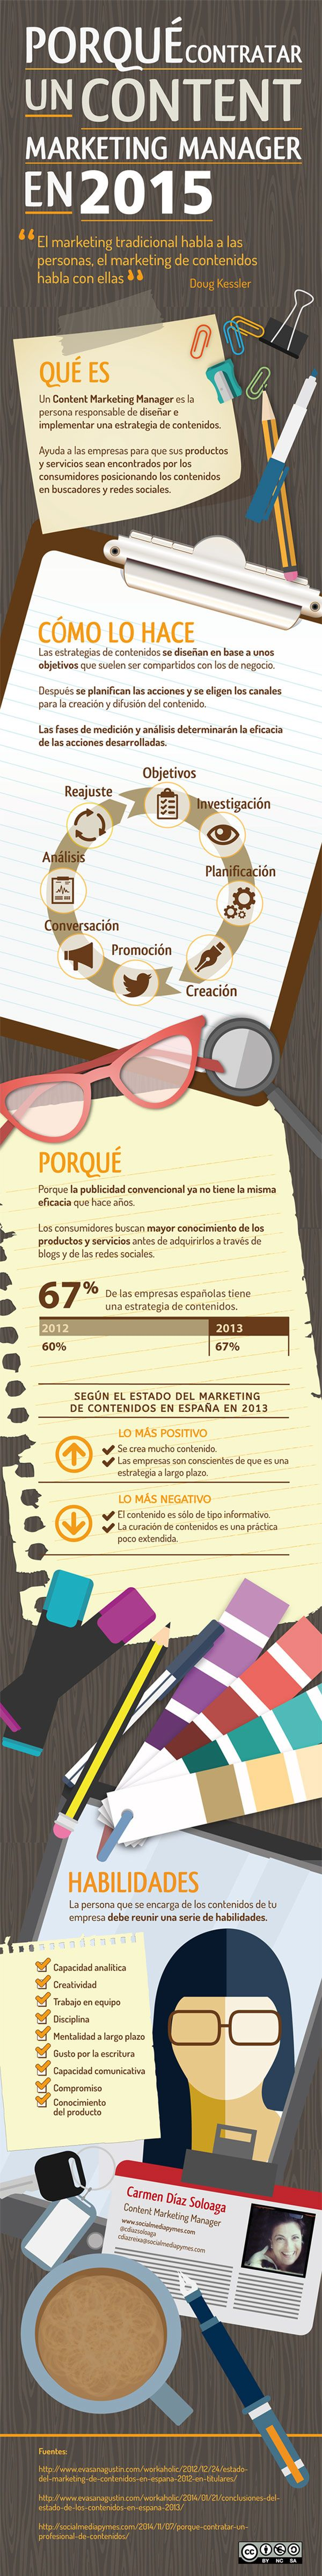 Por qué debes contratar un Content Marketing Manager